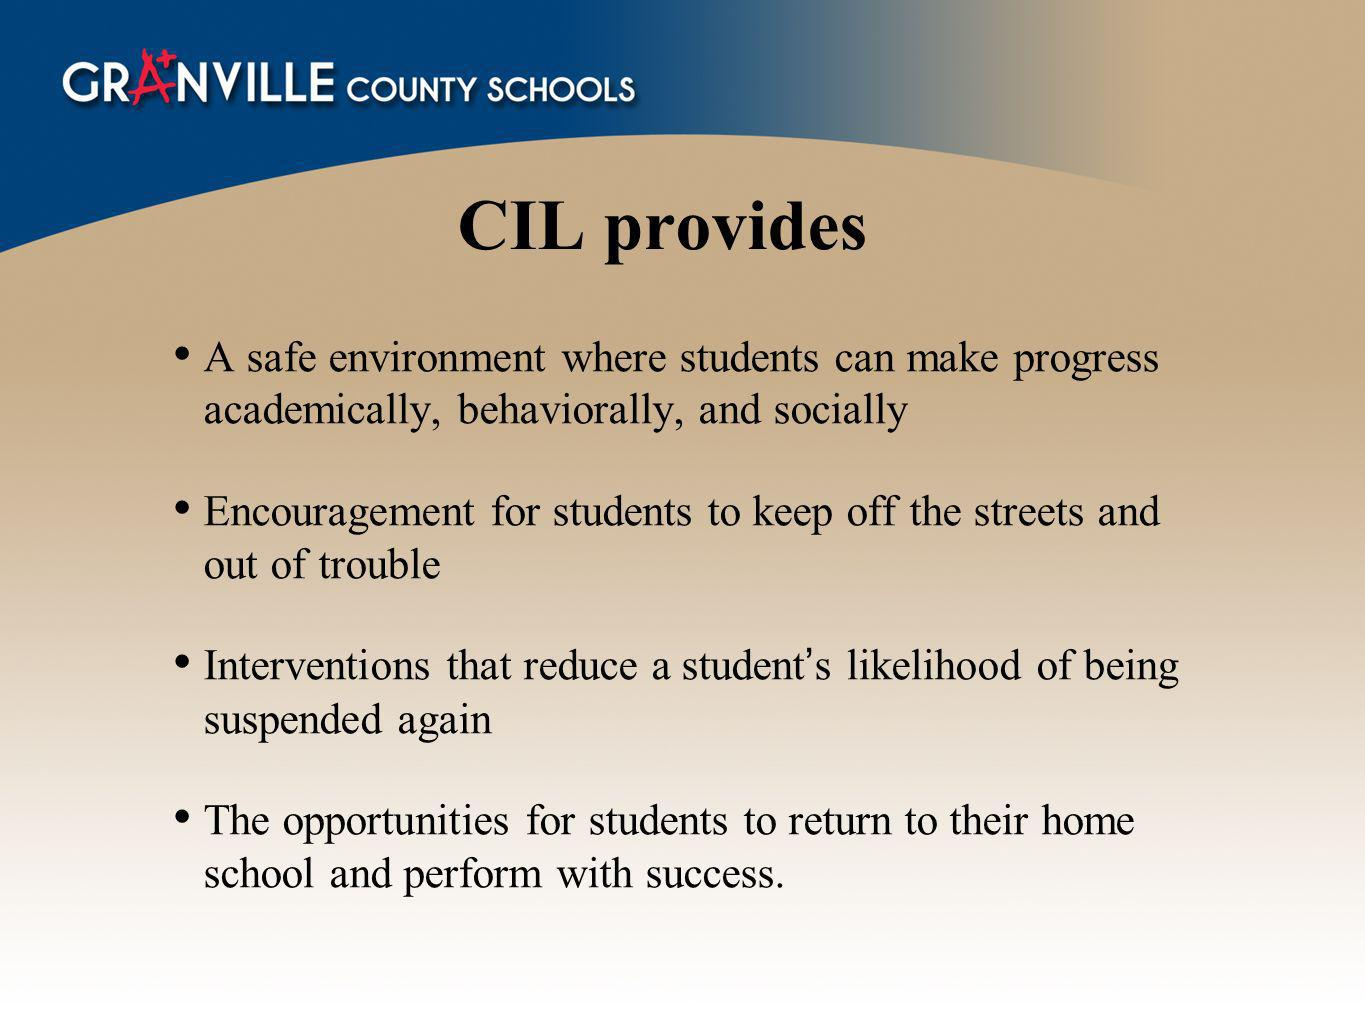 CIL provides A safe environment where students can make progress academically, behaviorally, and socially.